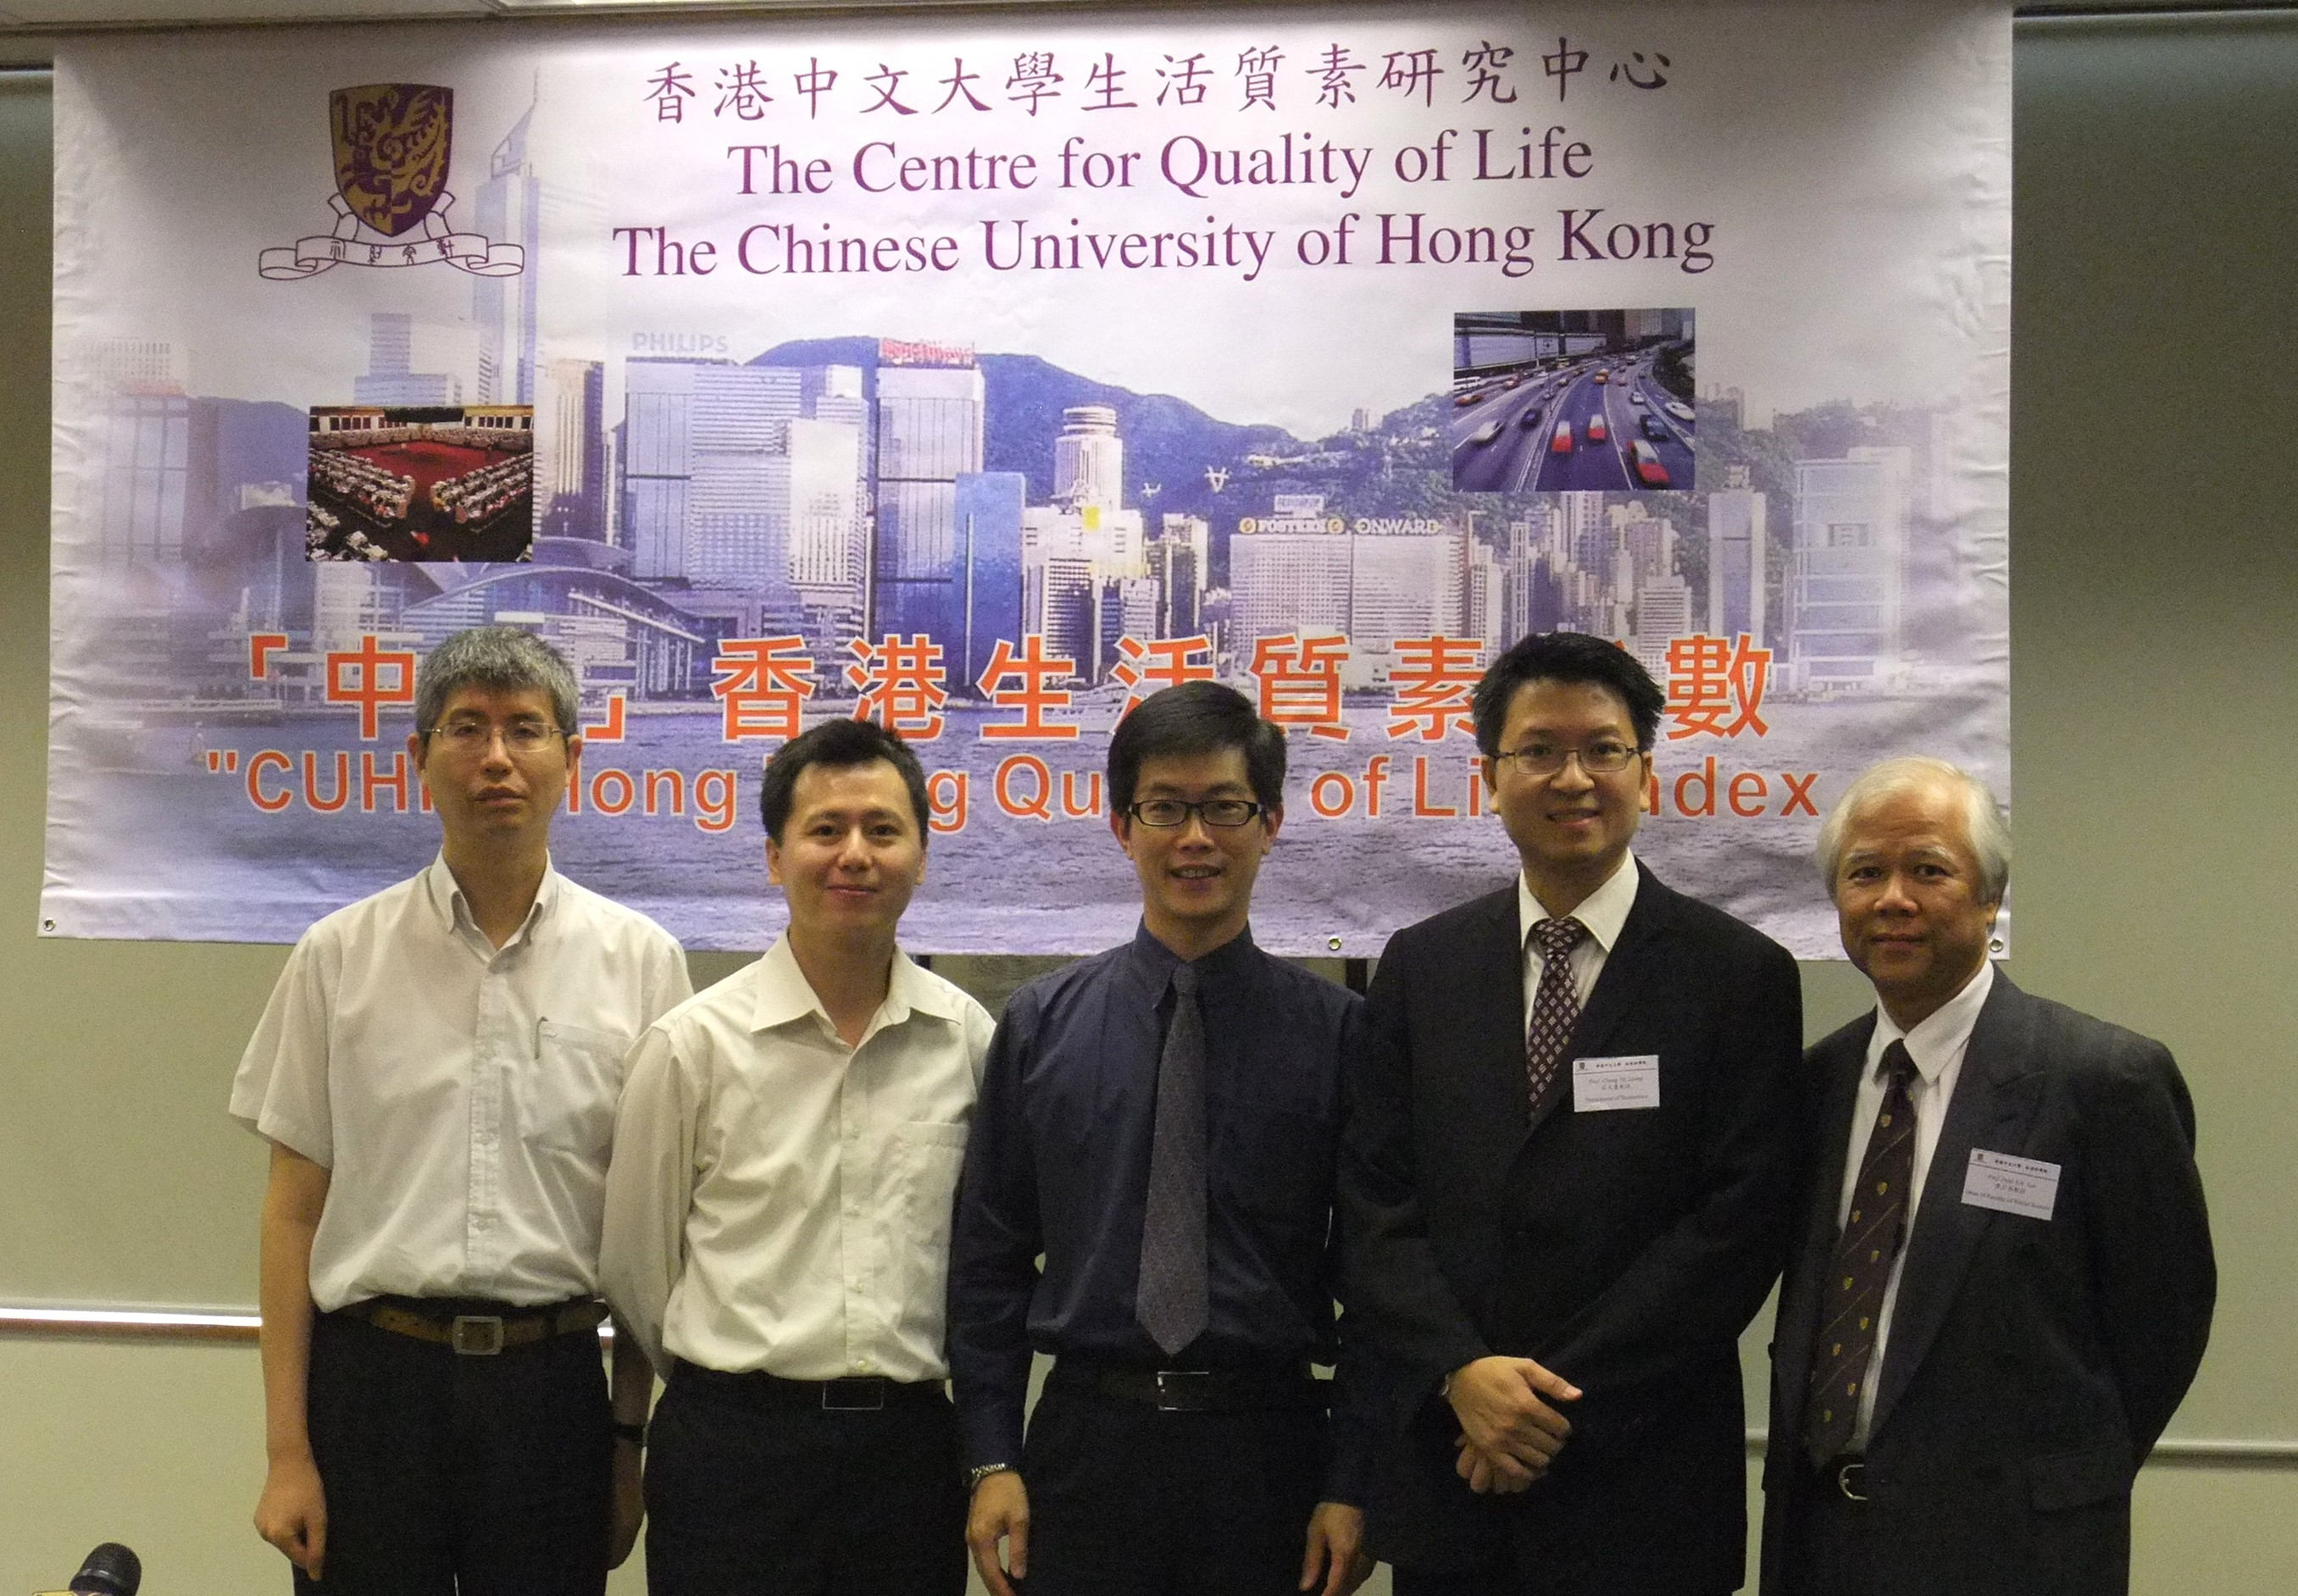 (From left) Prof. Ma Ngok, Associate Professor, Department of Government and Public Administration, CUHK; Prof. Ng Kai Hon, Assistant Professor, Department of Government and Public Administration; Prof. Ng Sai Leung, Director, Centre for Quality of Life and Associate Professor, Department of Geography and Resource Management; Prof. Chong Tai Leung, Associate Professor, Department of Economics; Prof. Paul Lee, Dean of Social Science and Professor, School of Journalism and Communication